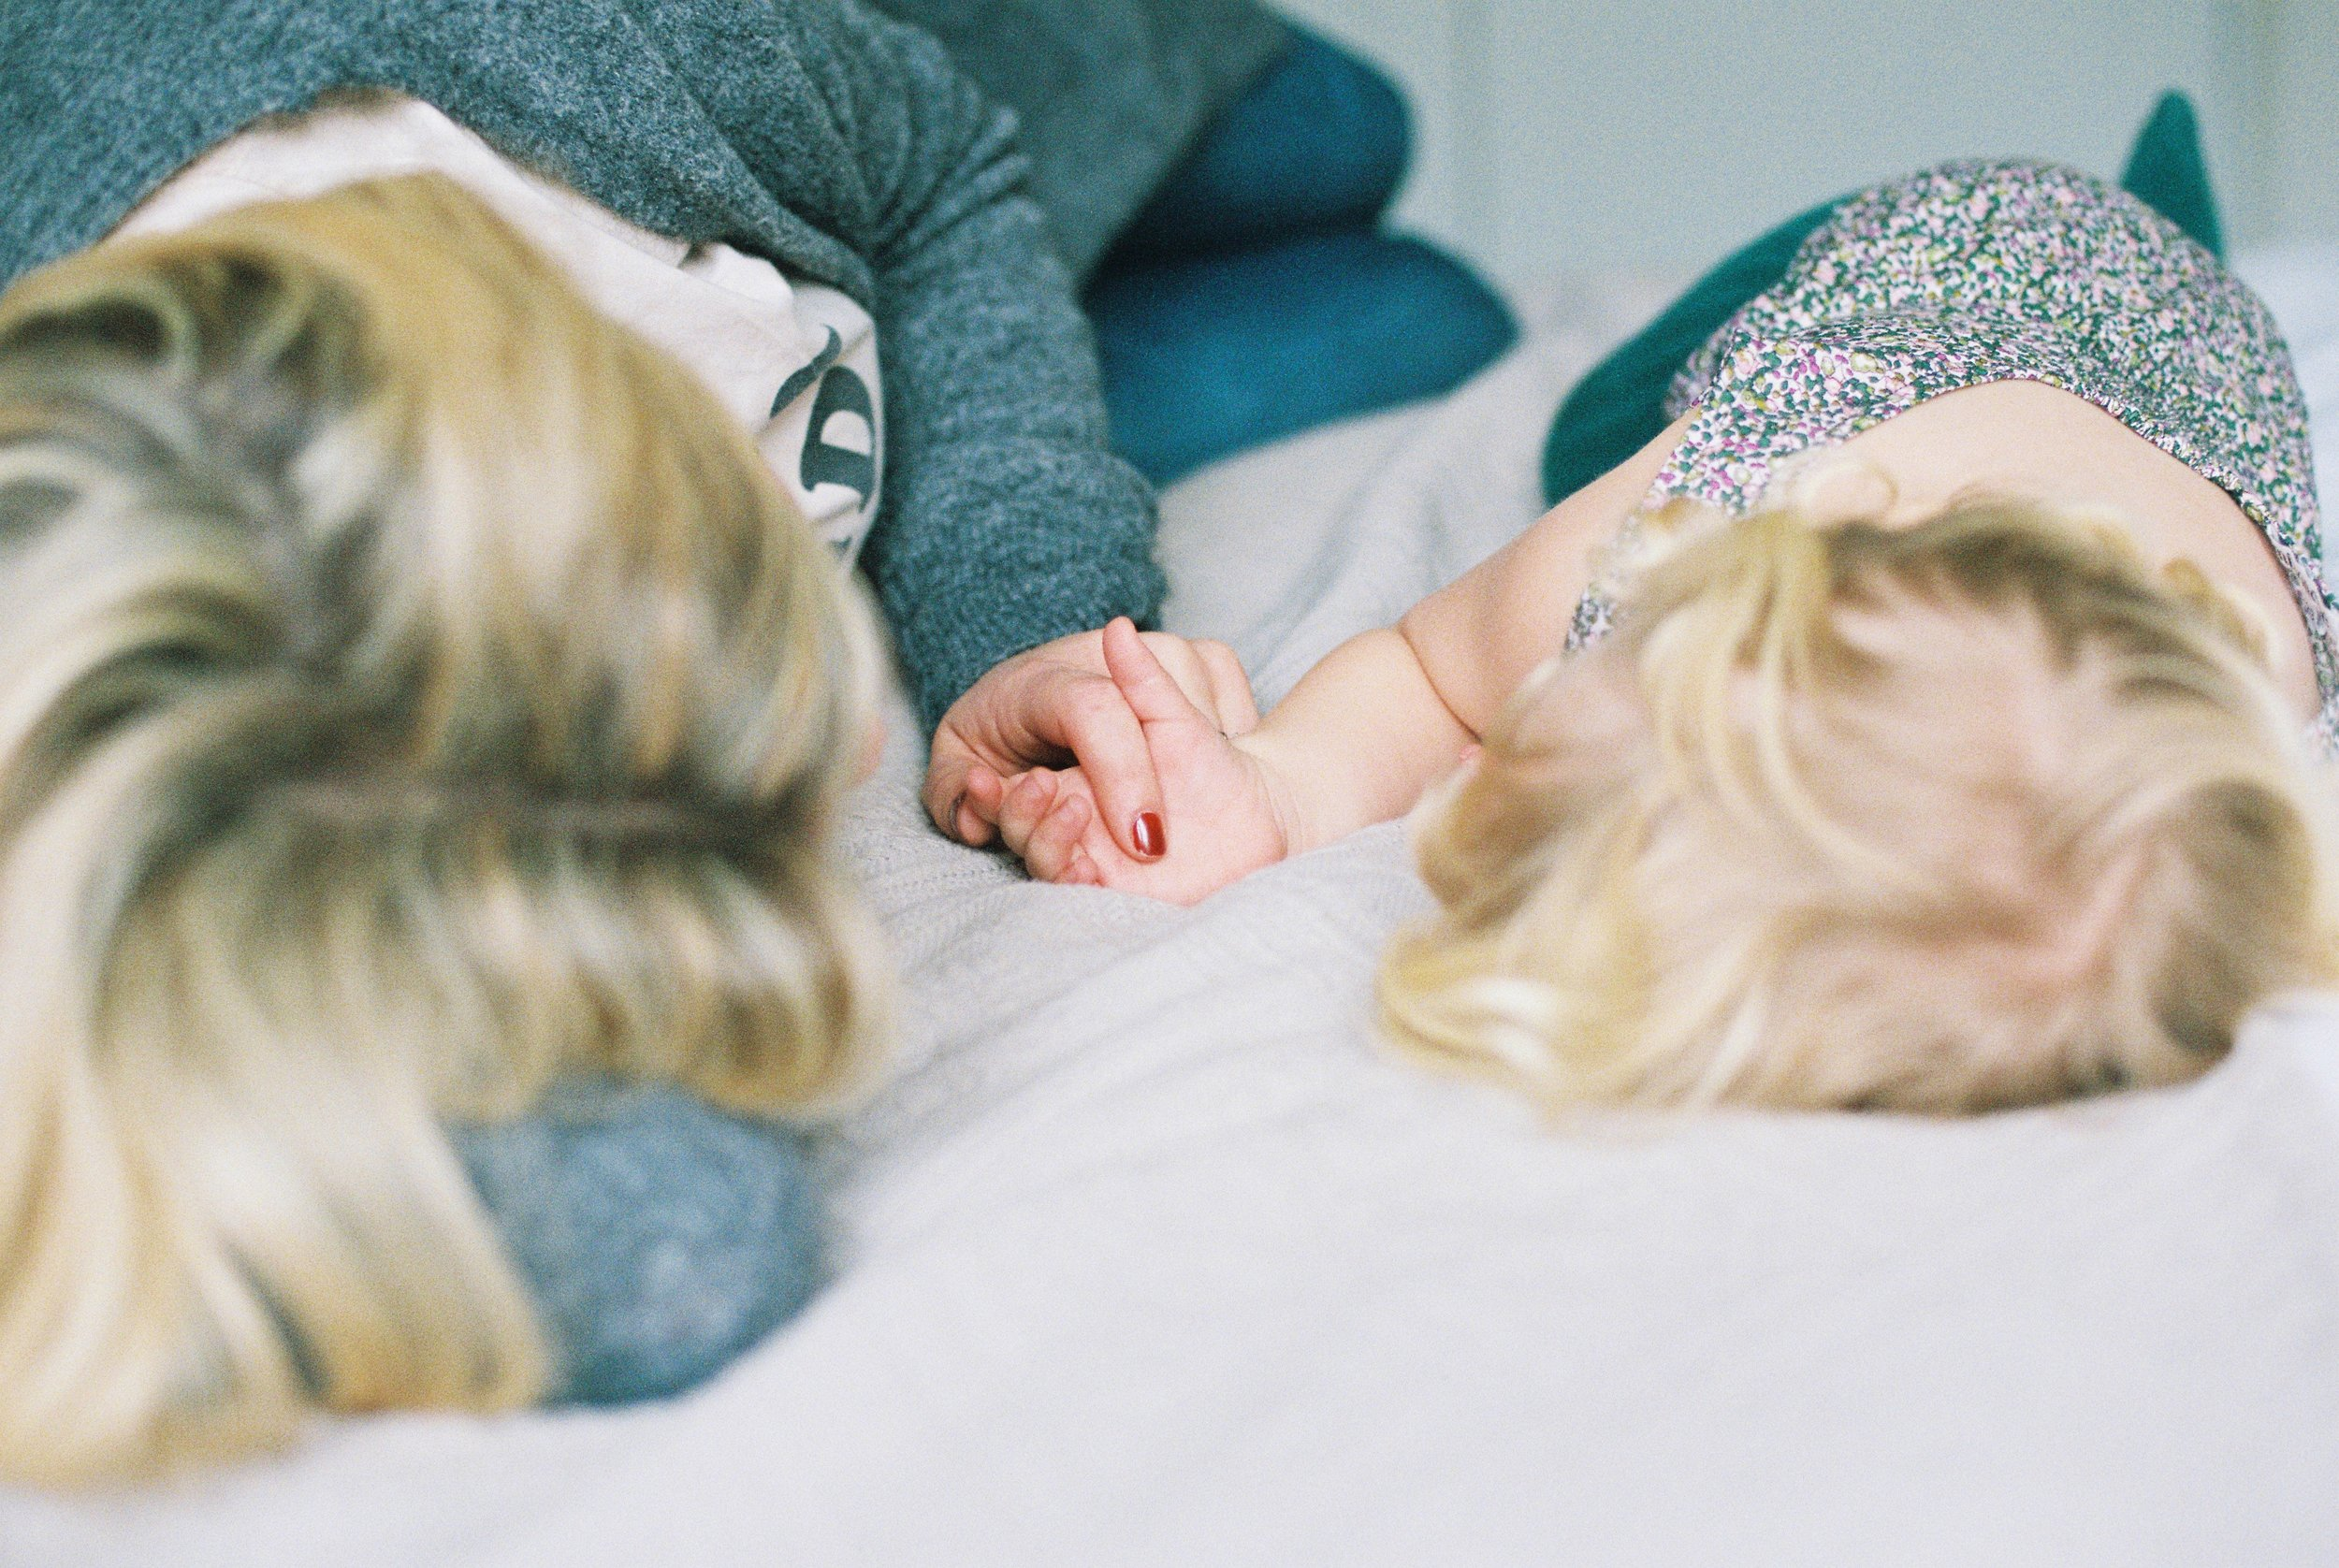 london_surrey_guildford_family_photographer_natural_light_emilywphotography.11.jpg